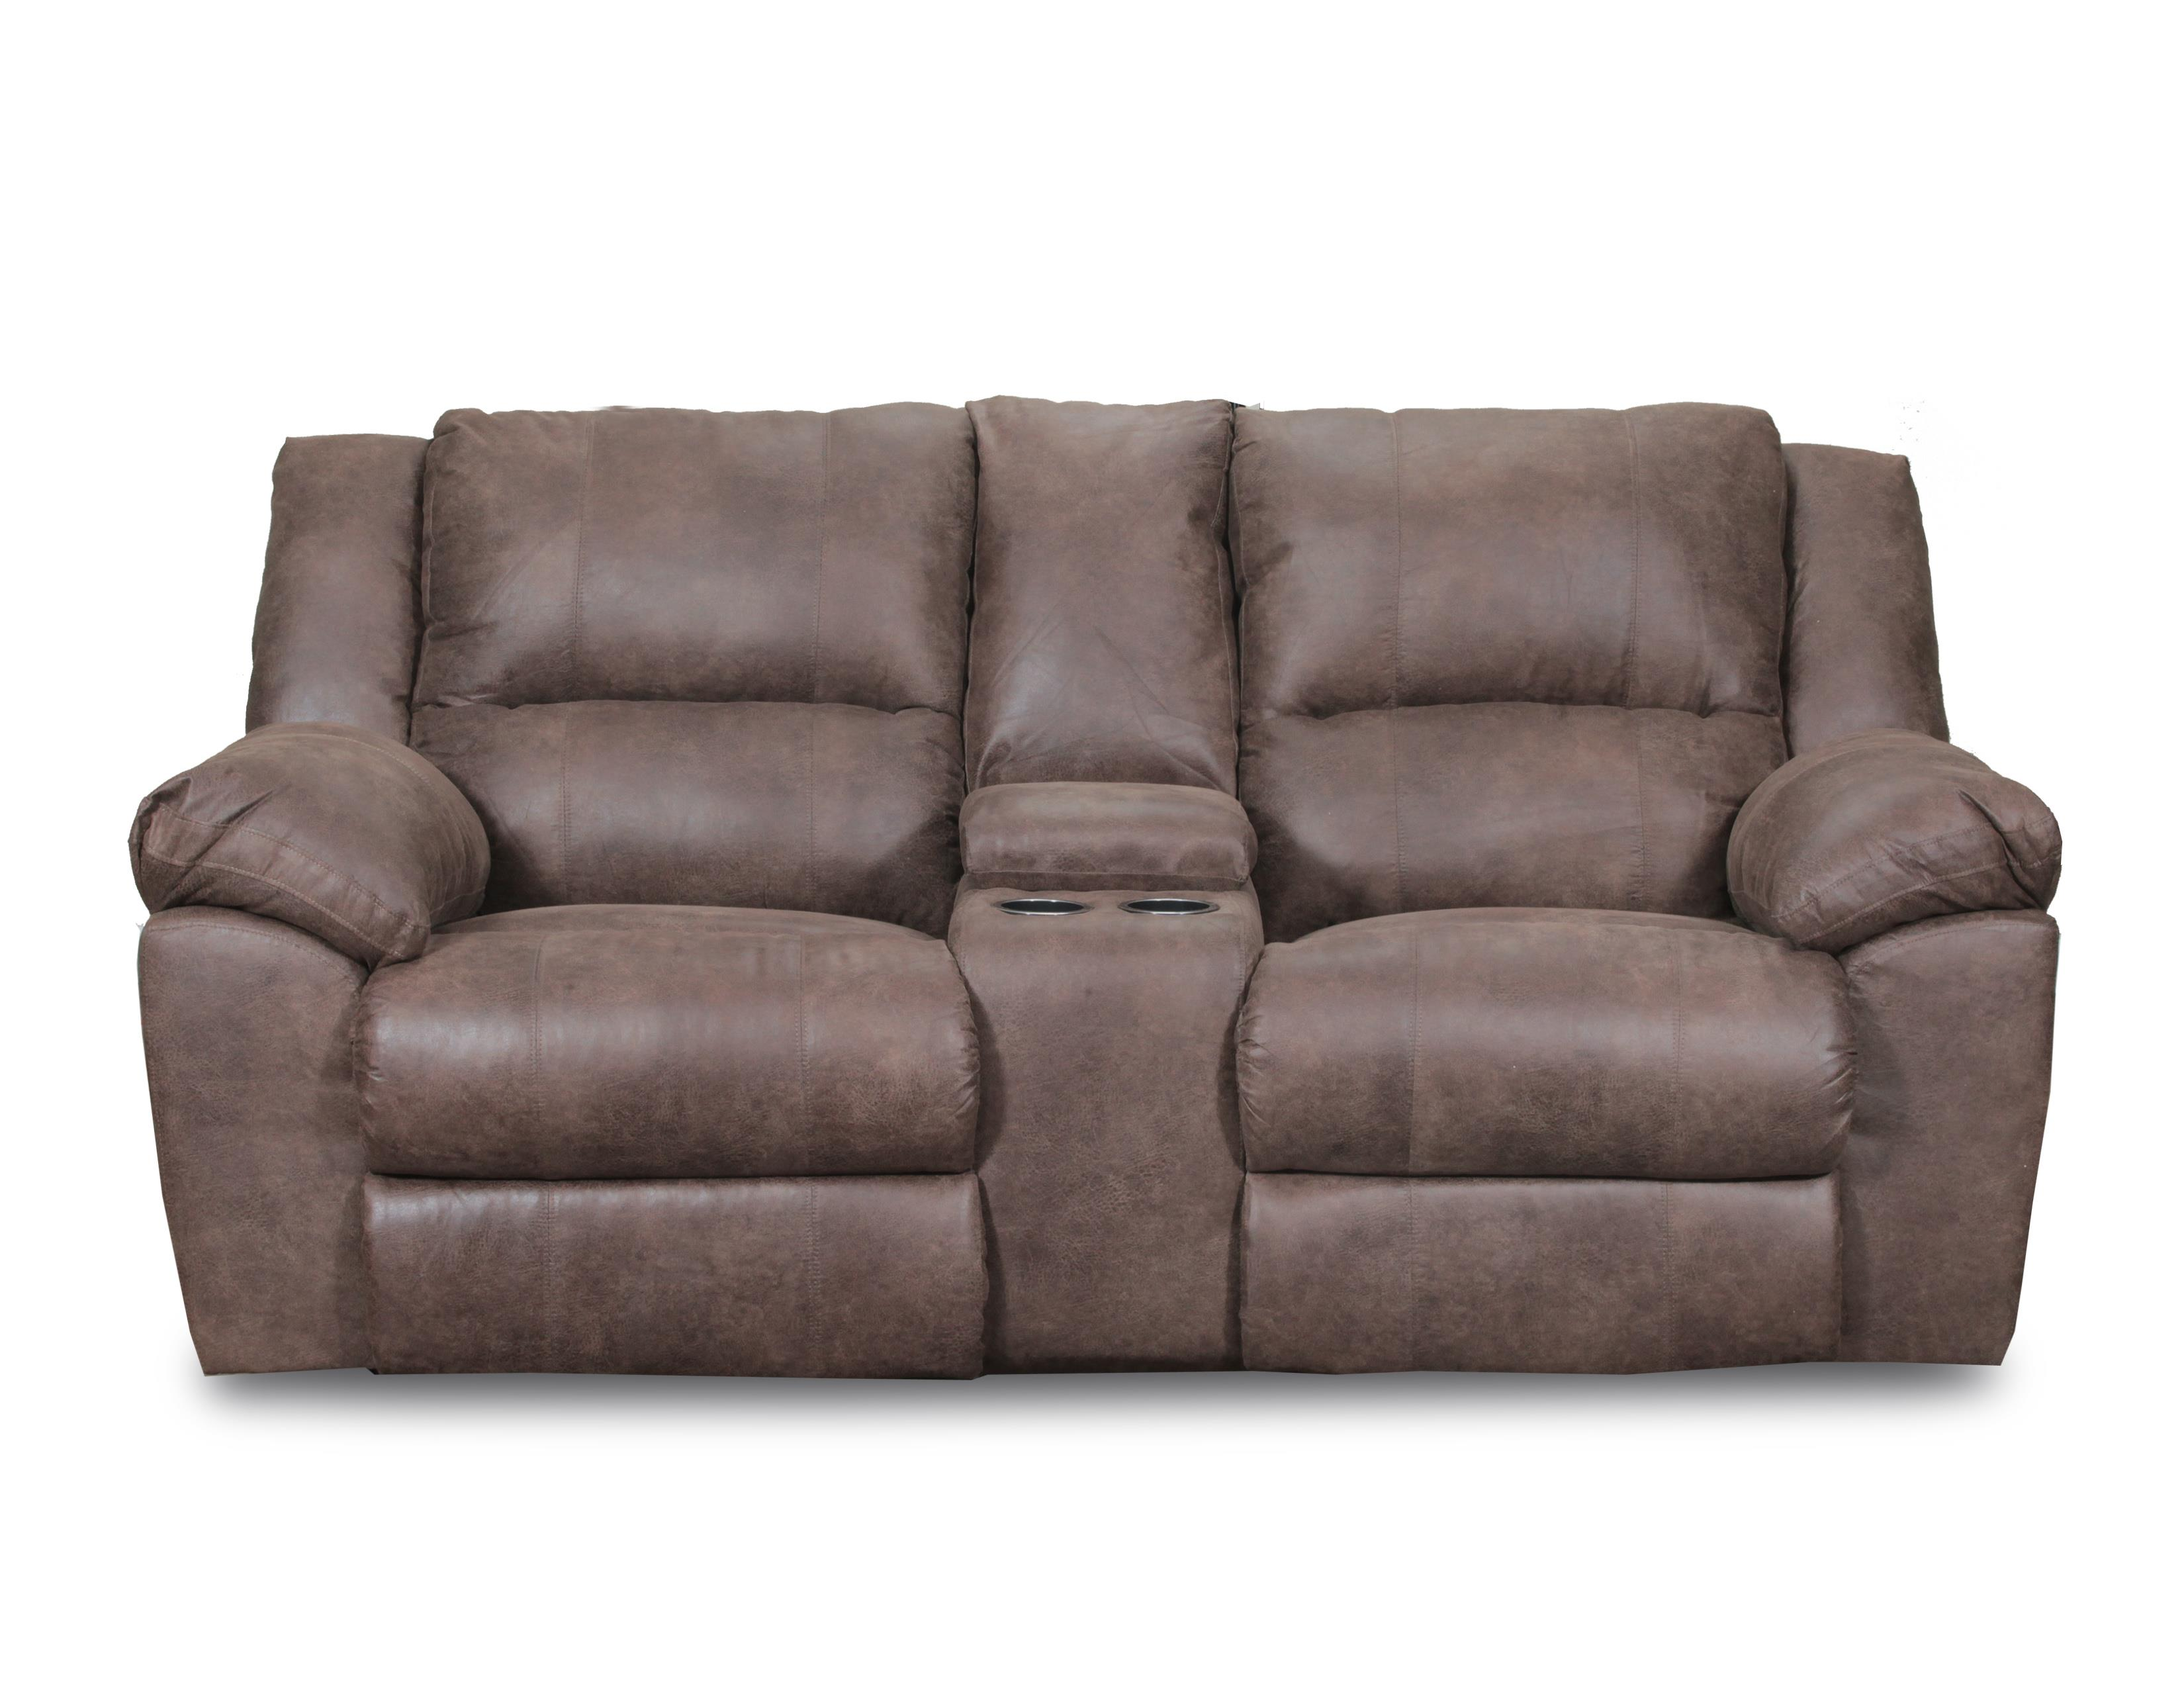 50111 Double Motion Loveseat by United Furniture Industries at Bullard Furniture